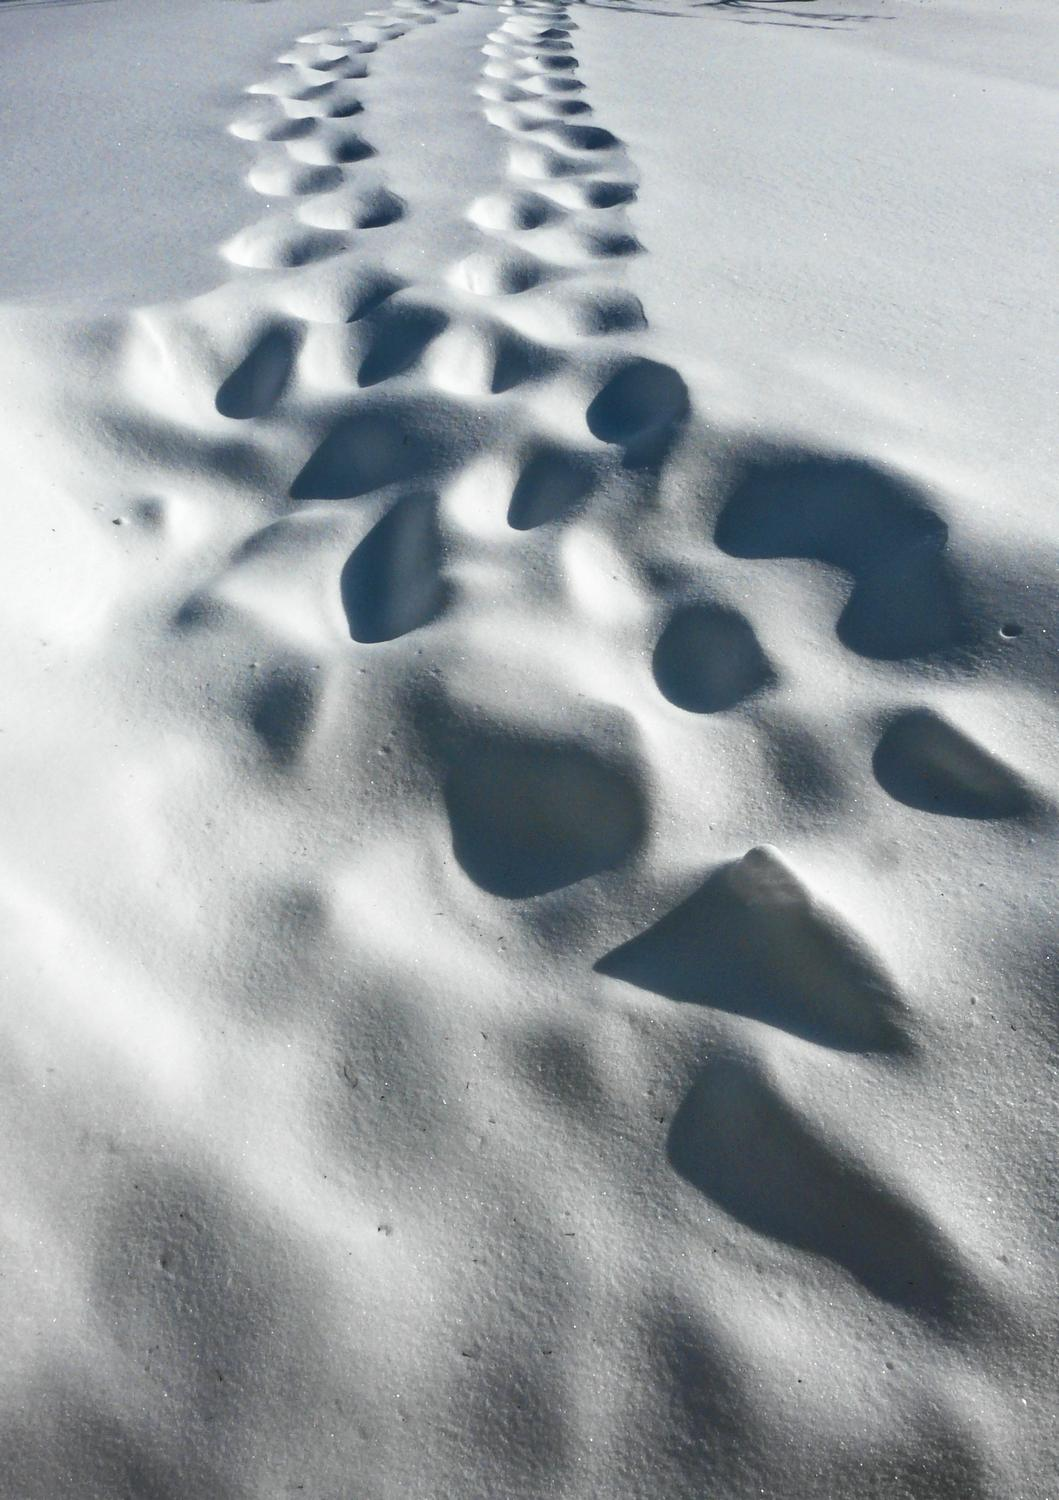 tracks in the snow-  Panasonic DMC-FZ18 - This is what snowbound really looks like. - Tony Karp, design, art, photography, techno-impressionist, techno-impressionism, aerial photography , drone , drones , dji , mavic pro , video , 3D printing - Books -